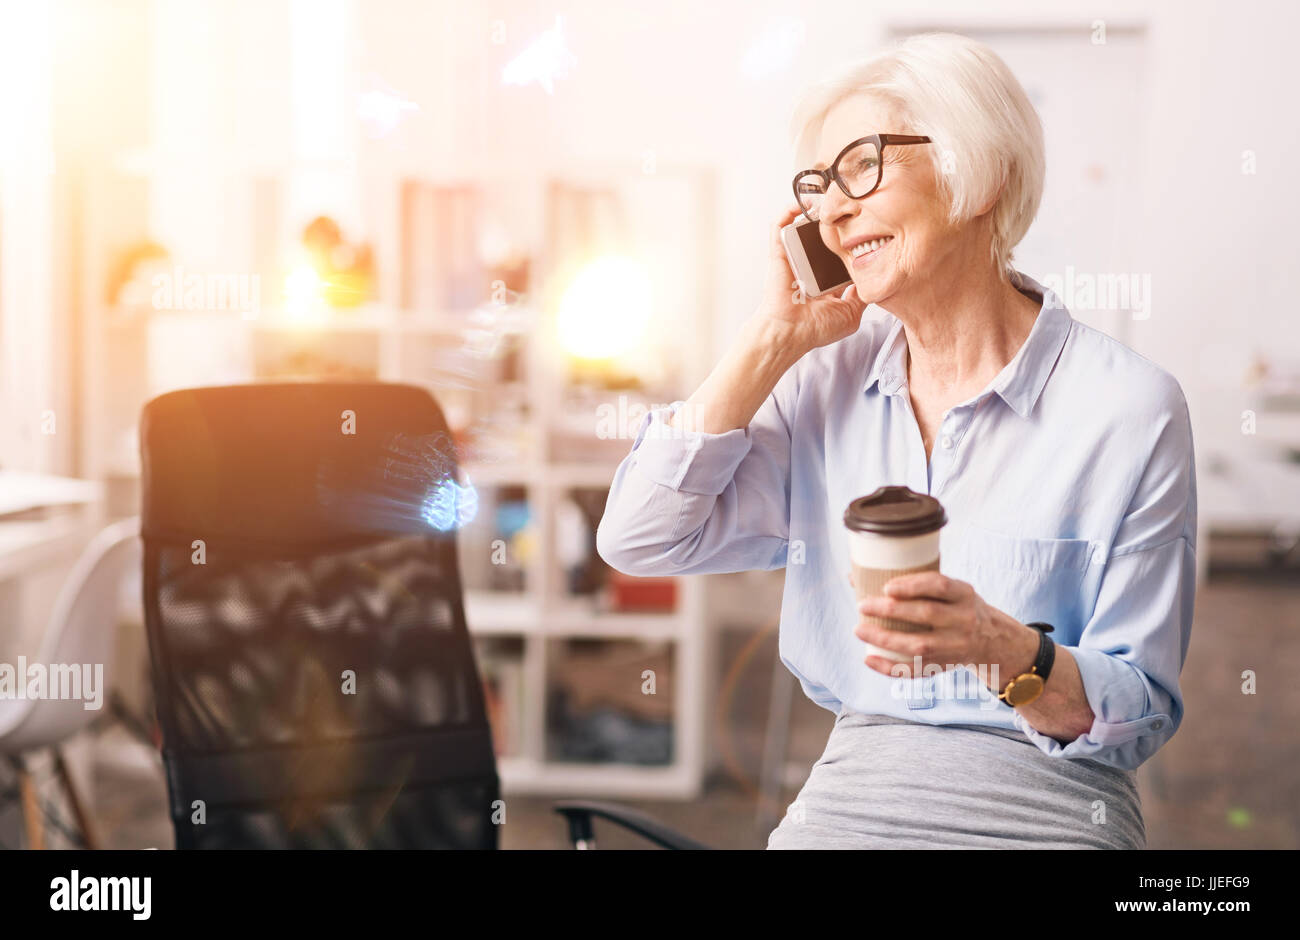 Charismatic respected businesswoman chatting on the phone - Stock Image